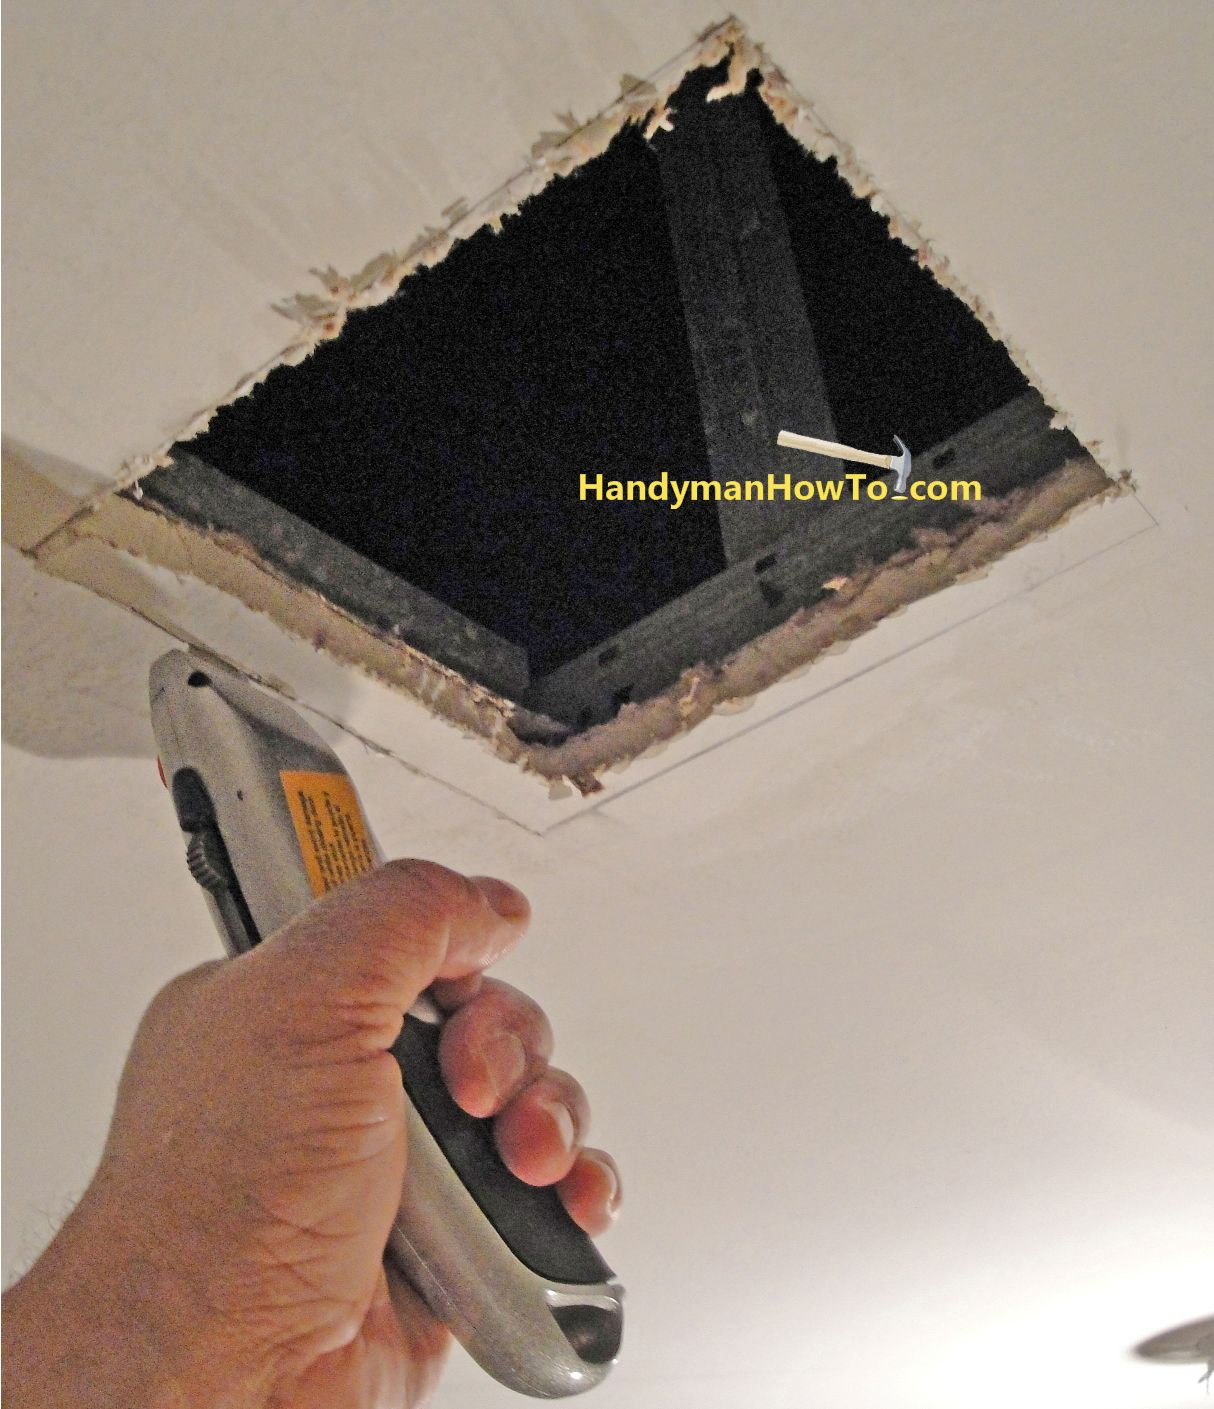 How To Repair Drywall Ceiling Water Damage Repair Panel Bracing Drywall Ceiling Repair Ceilings Water Damaged Ceiling